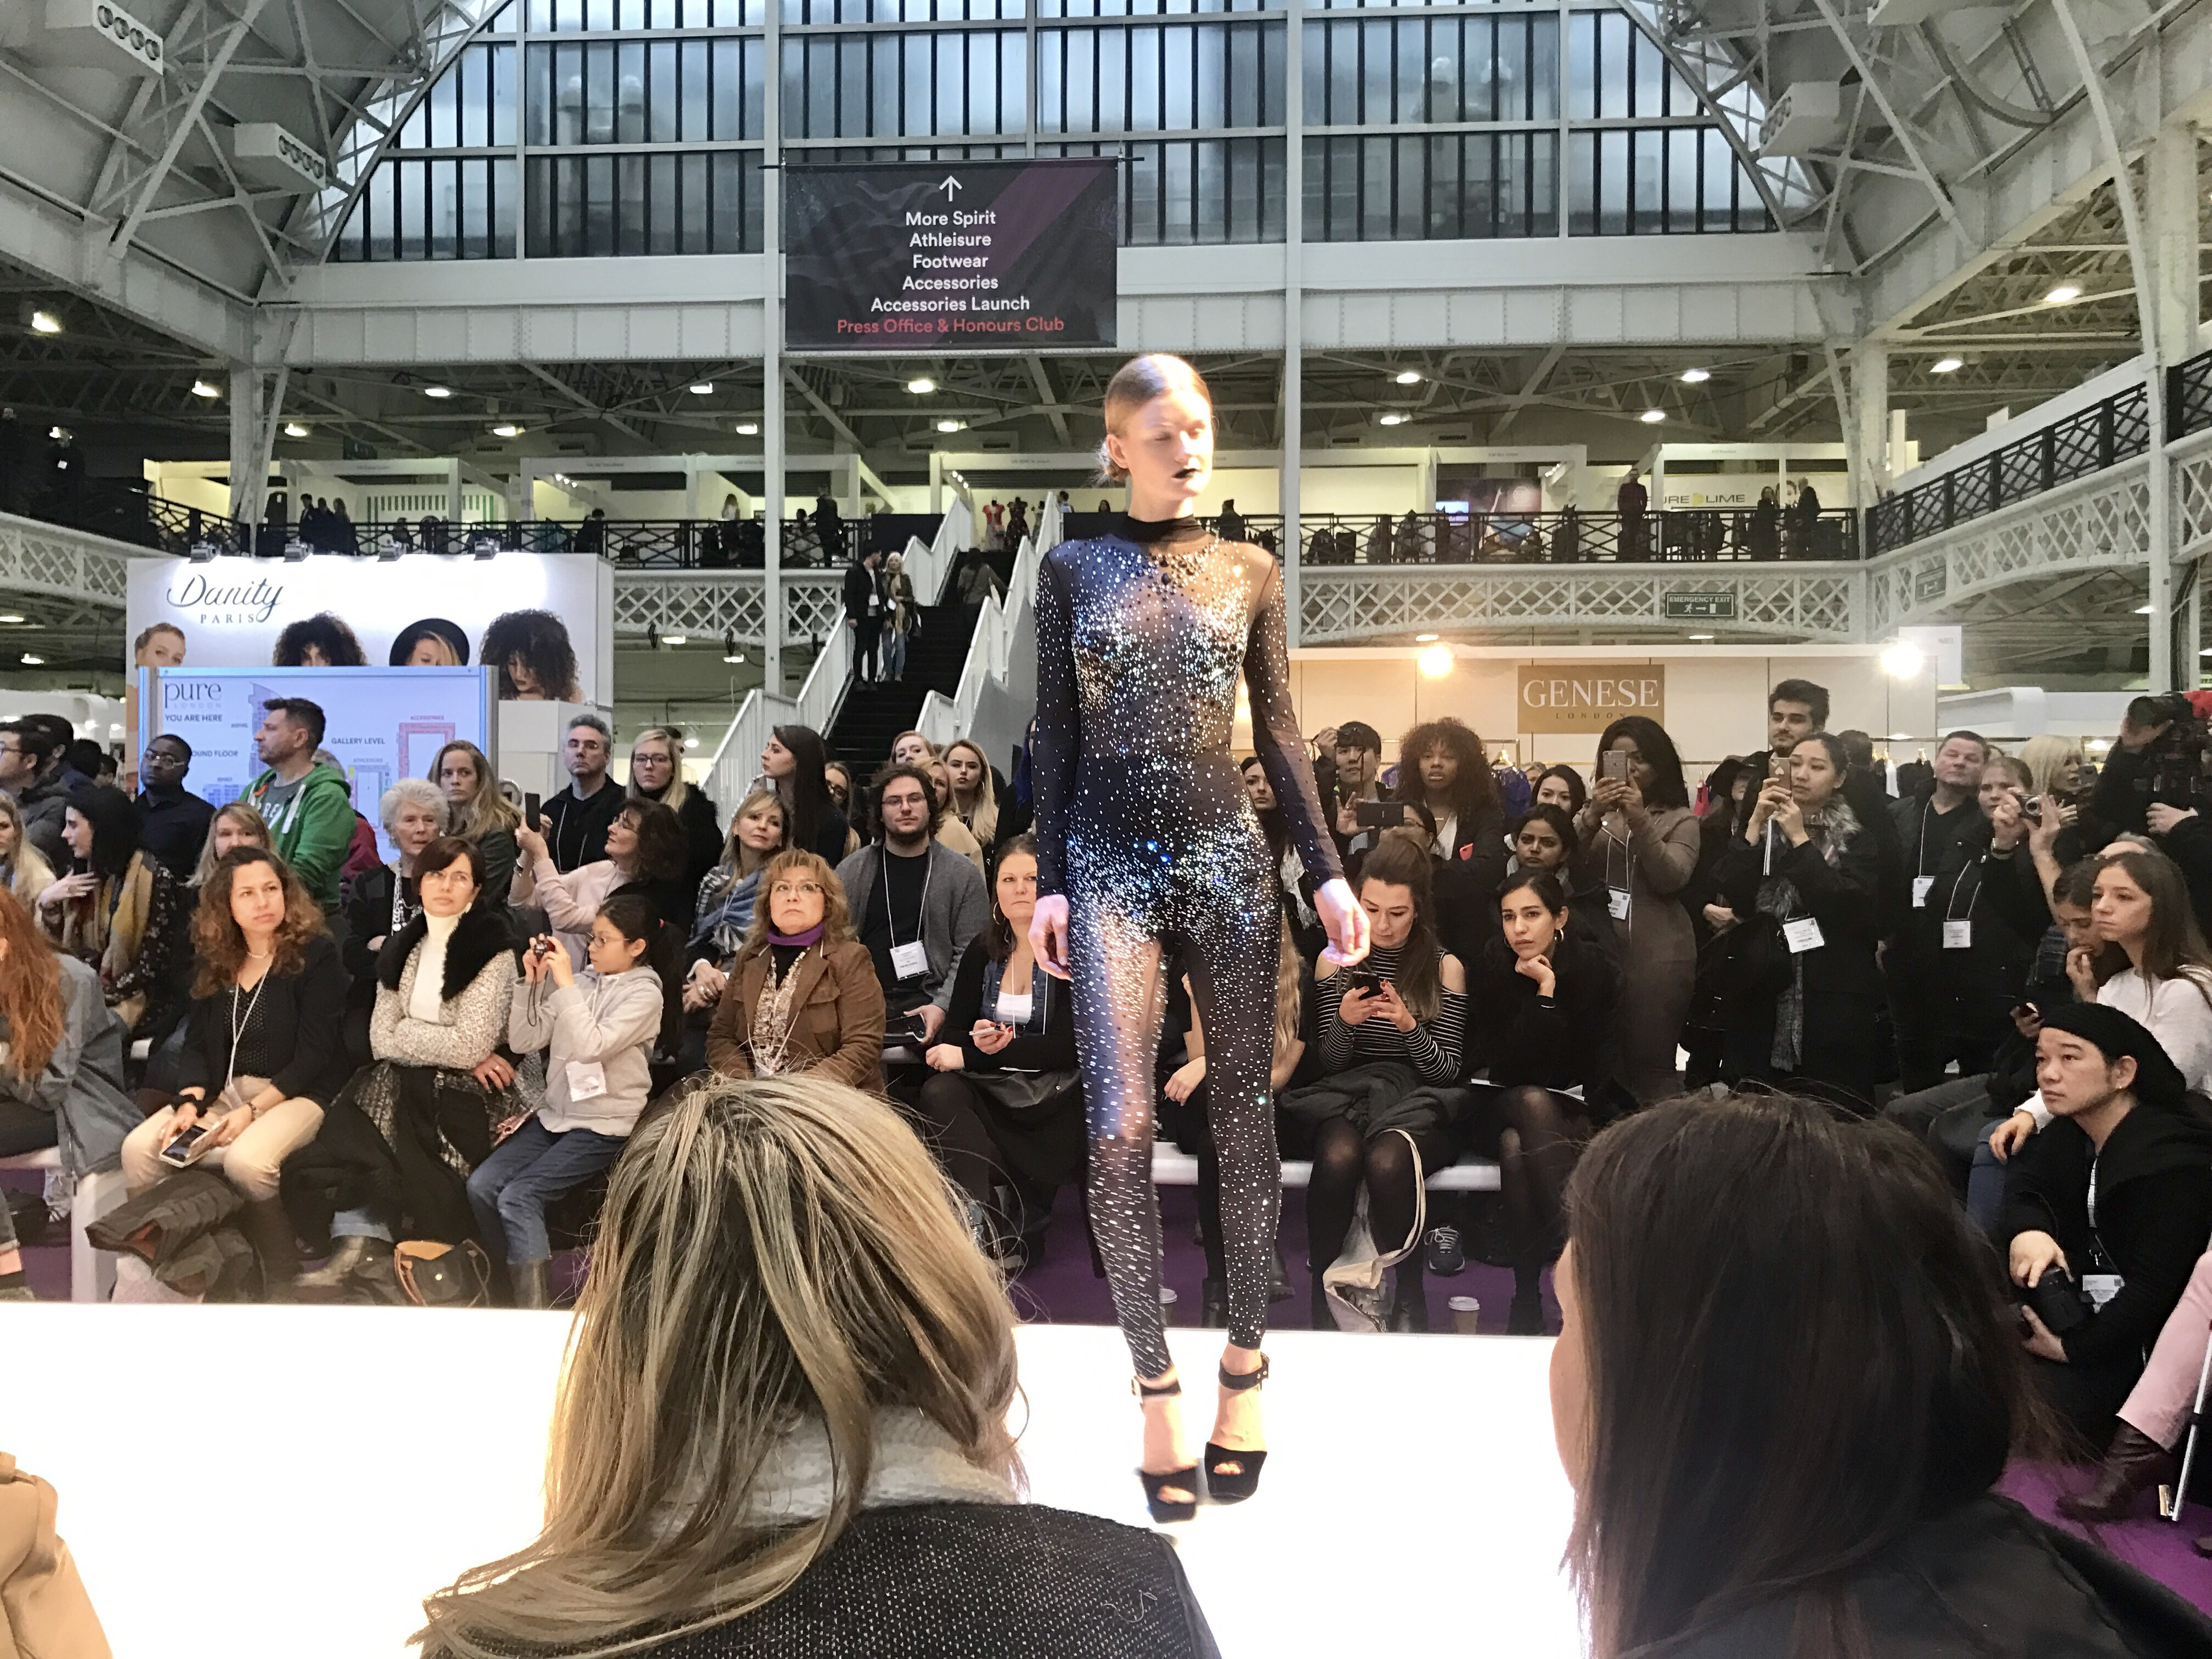 Pure London: Spirit Catwalk